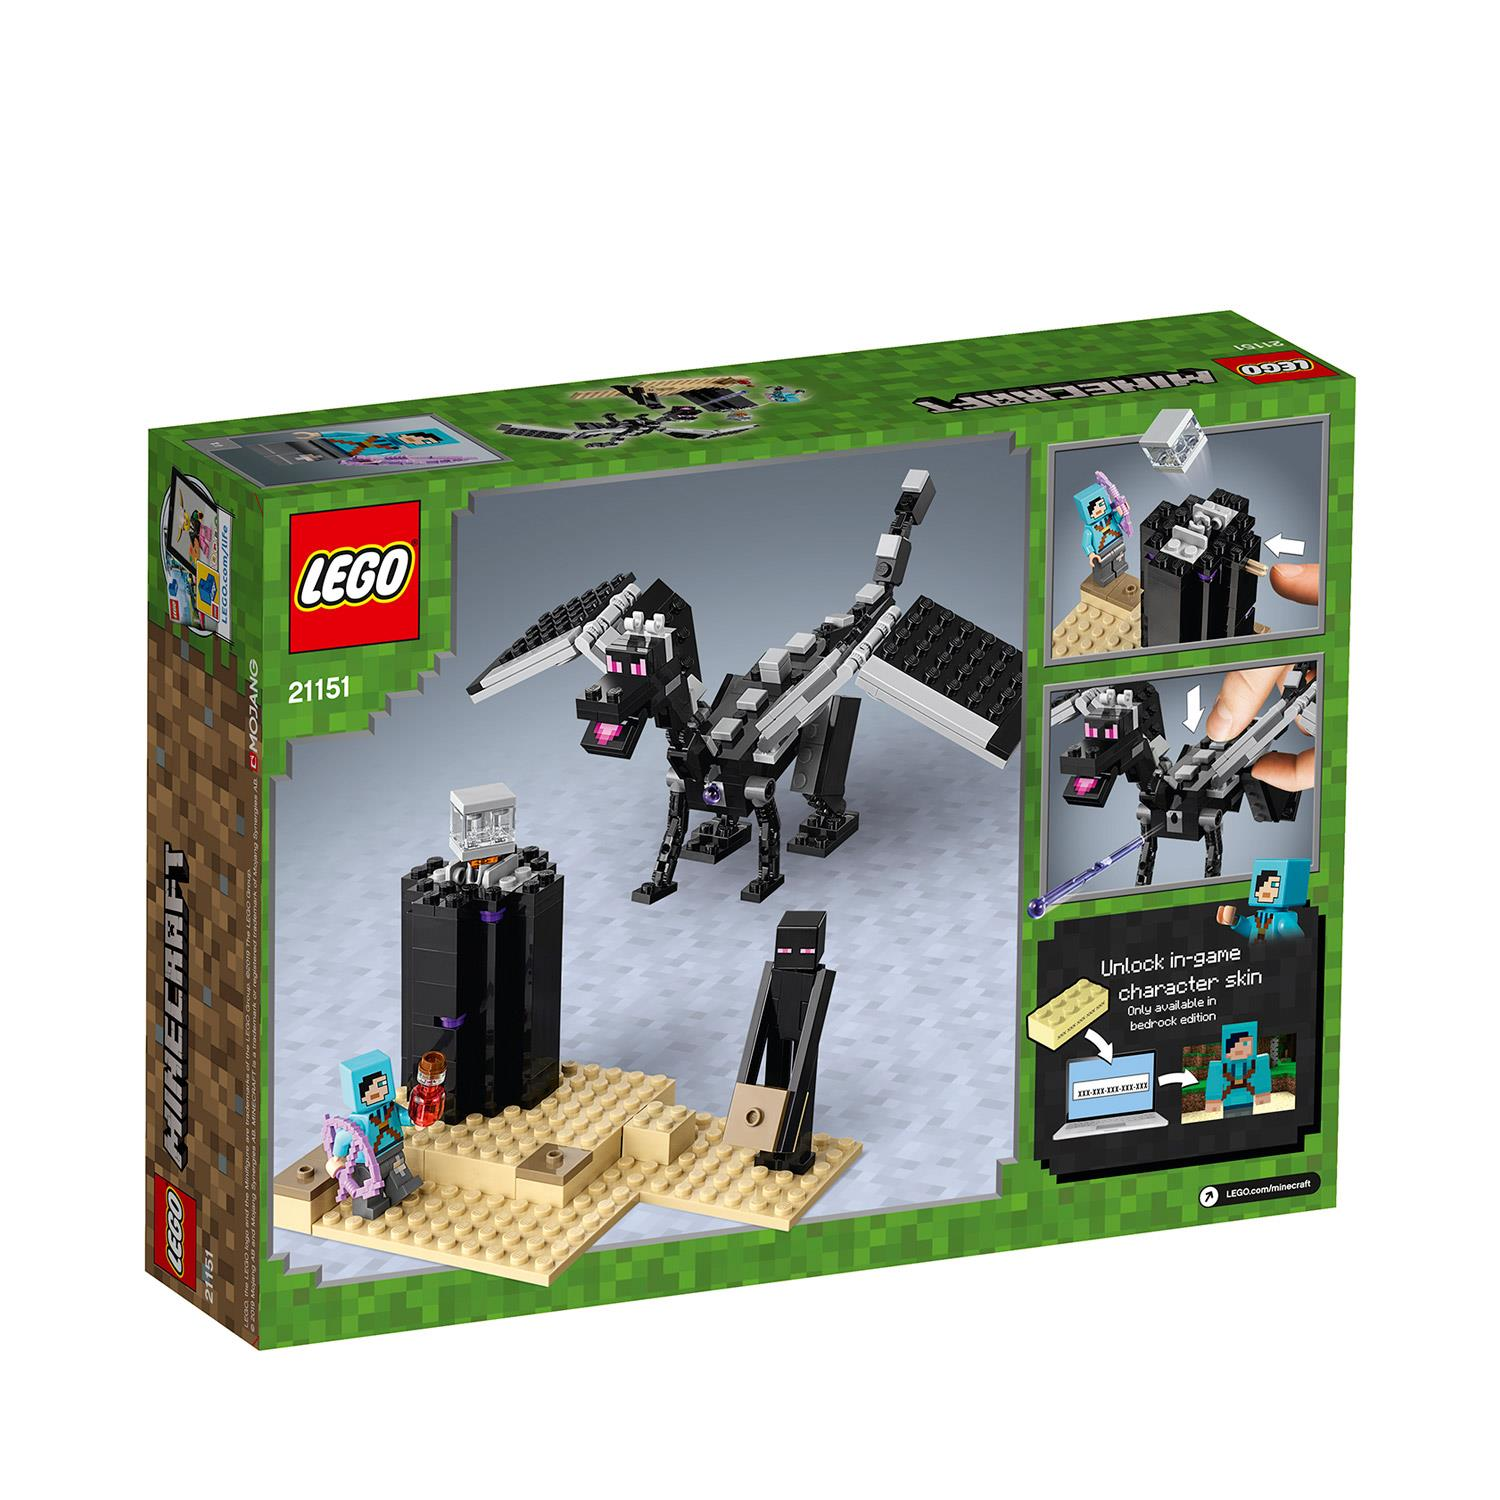 LEGO Minecraft The End Battle 21151 Building Kit 222 Piece